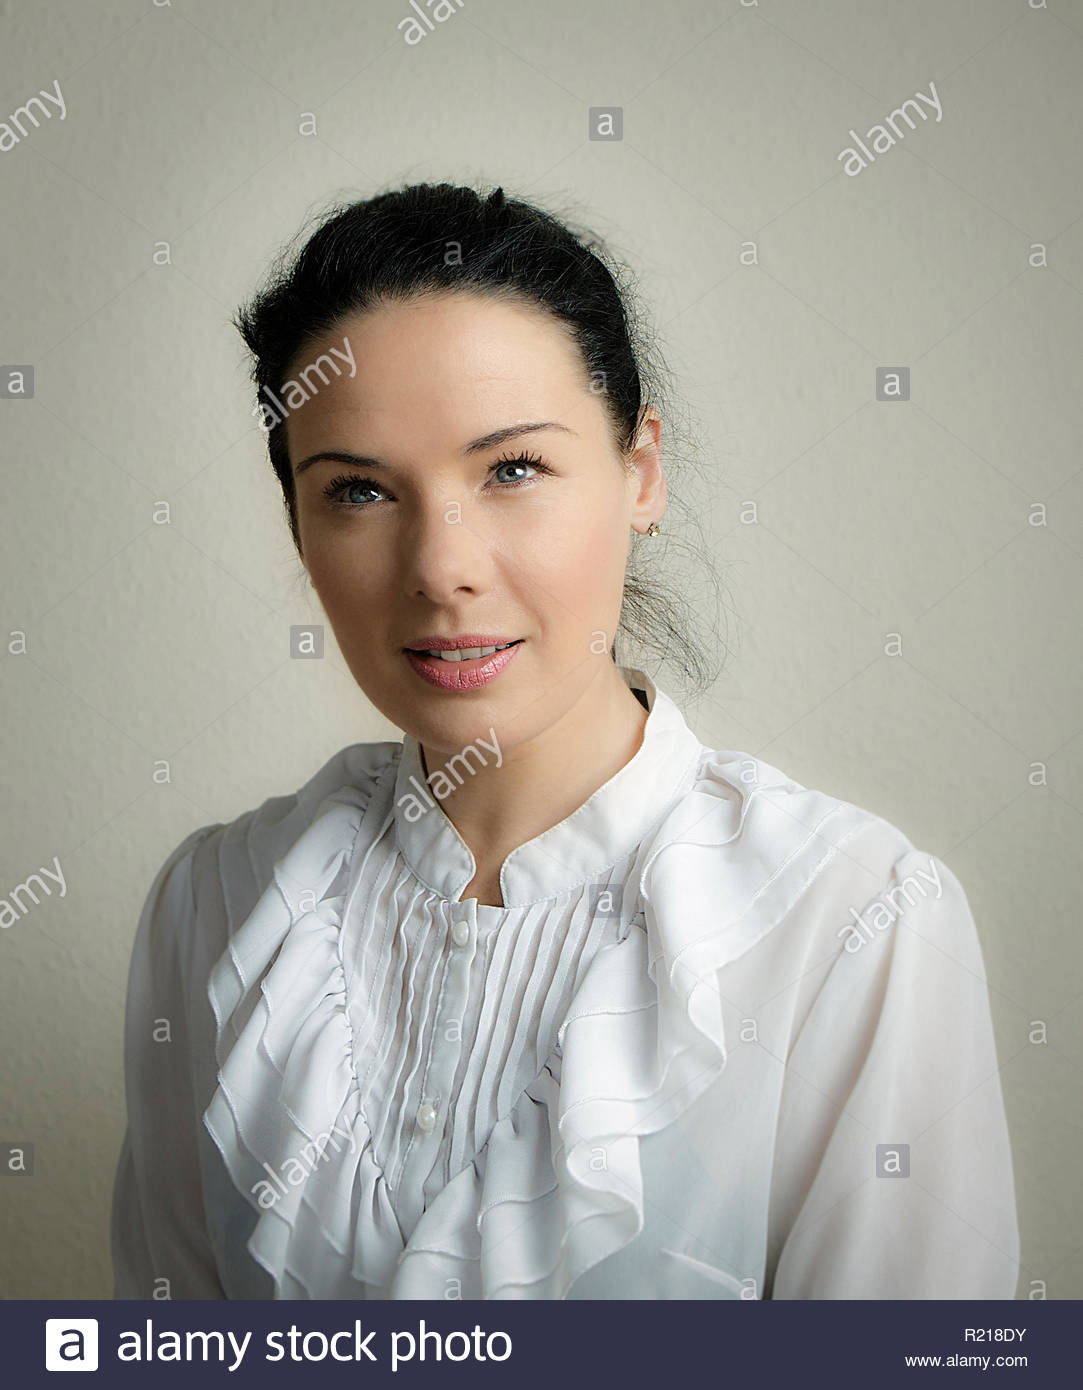 Head, shoulders and chest portrait of a dark haired woman wearing a frilly blouse, with blue eyes glinting in the subdued light. - Stock Image